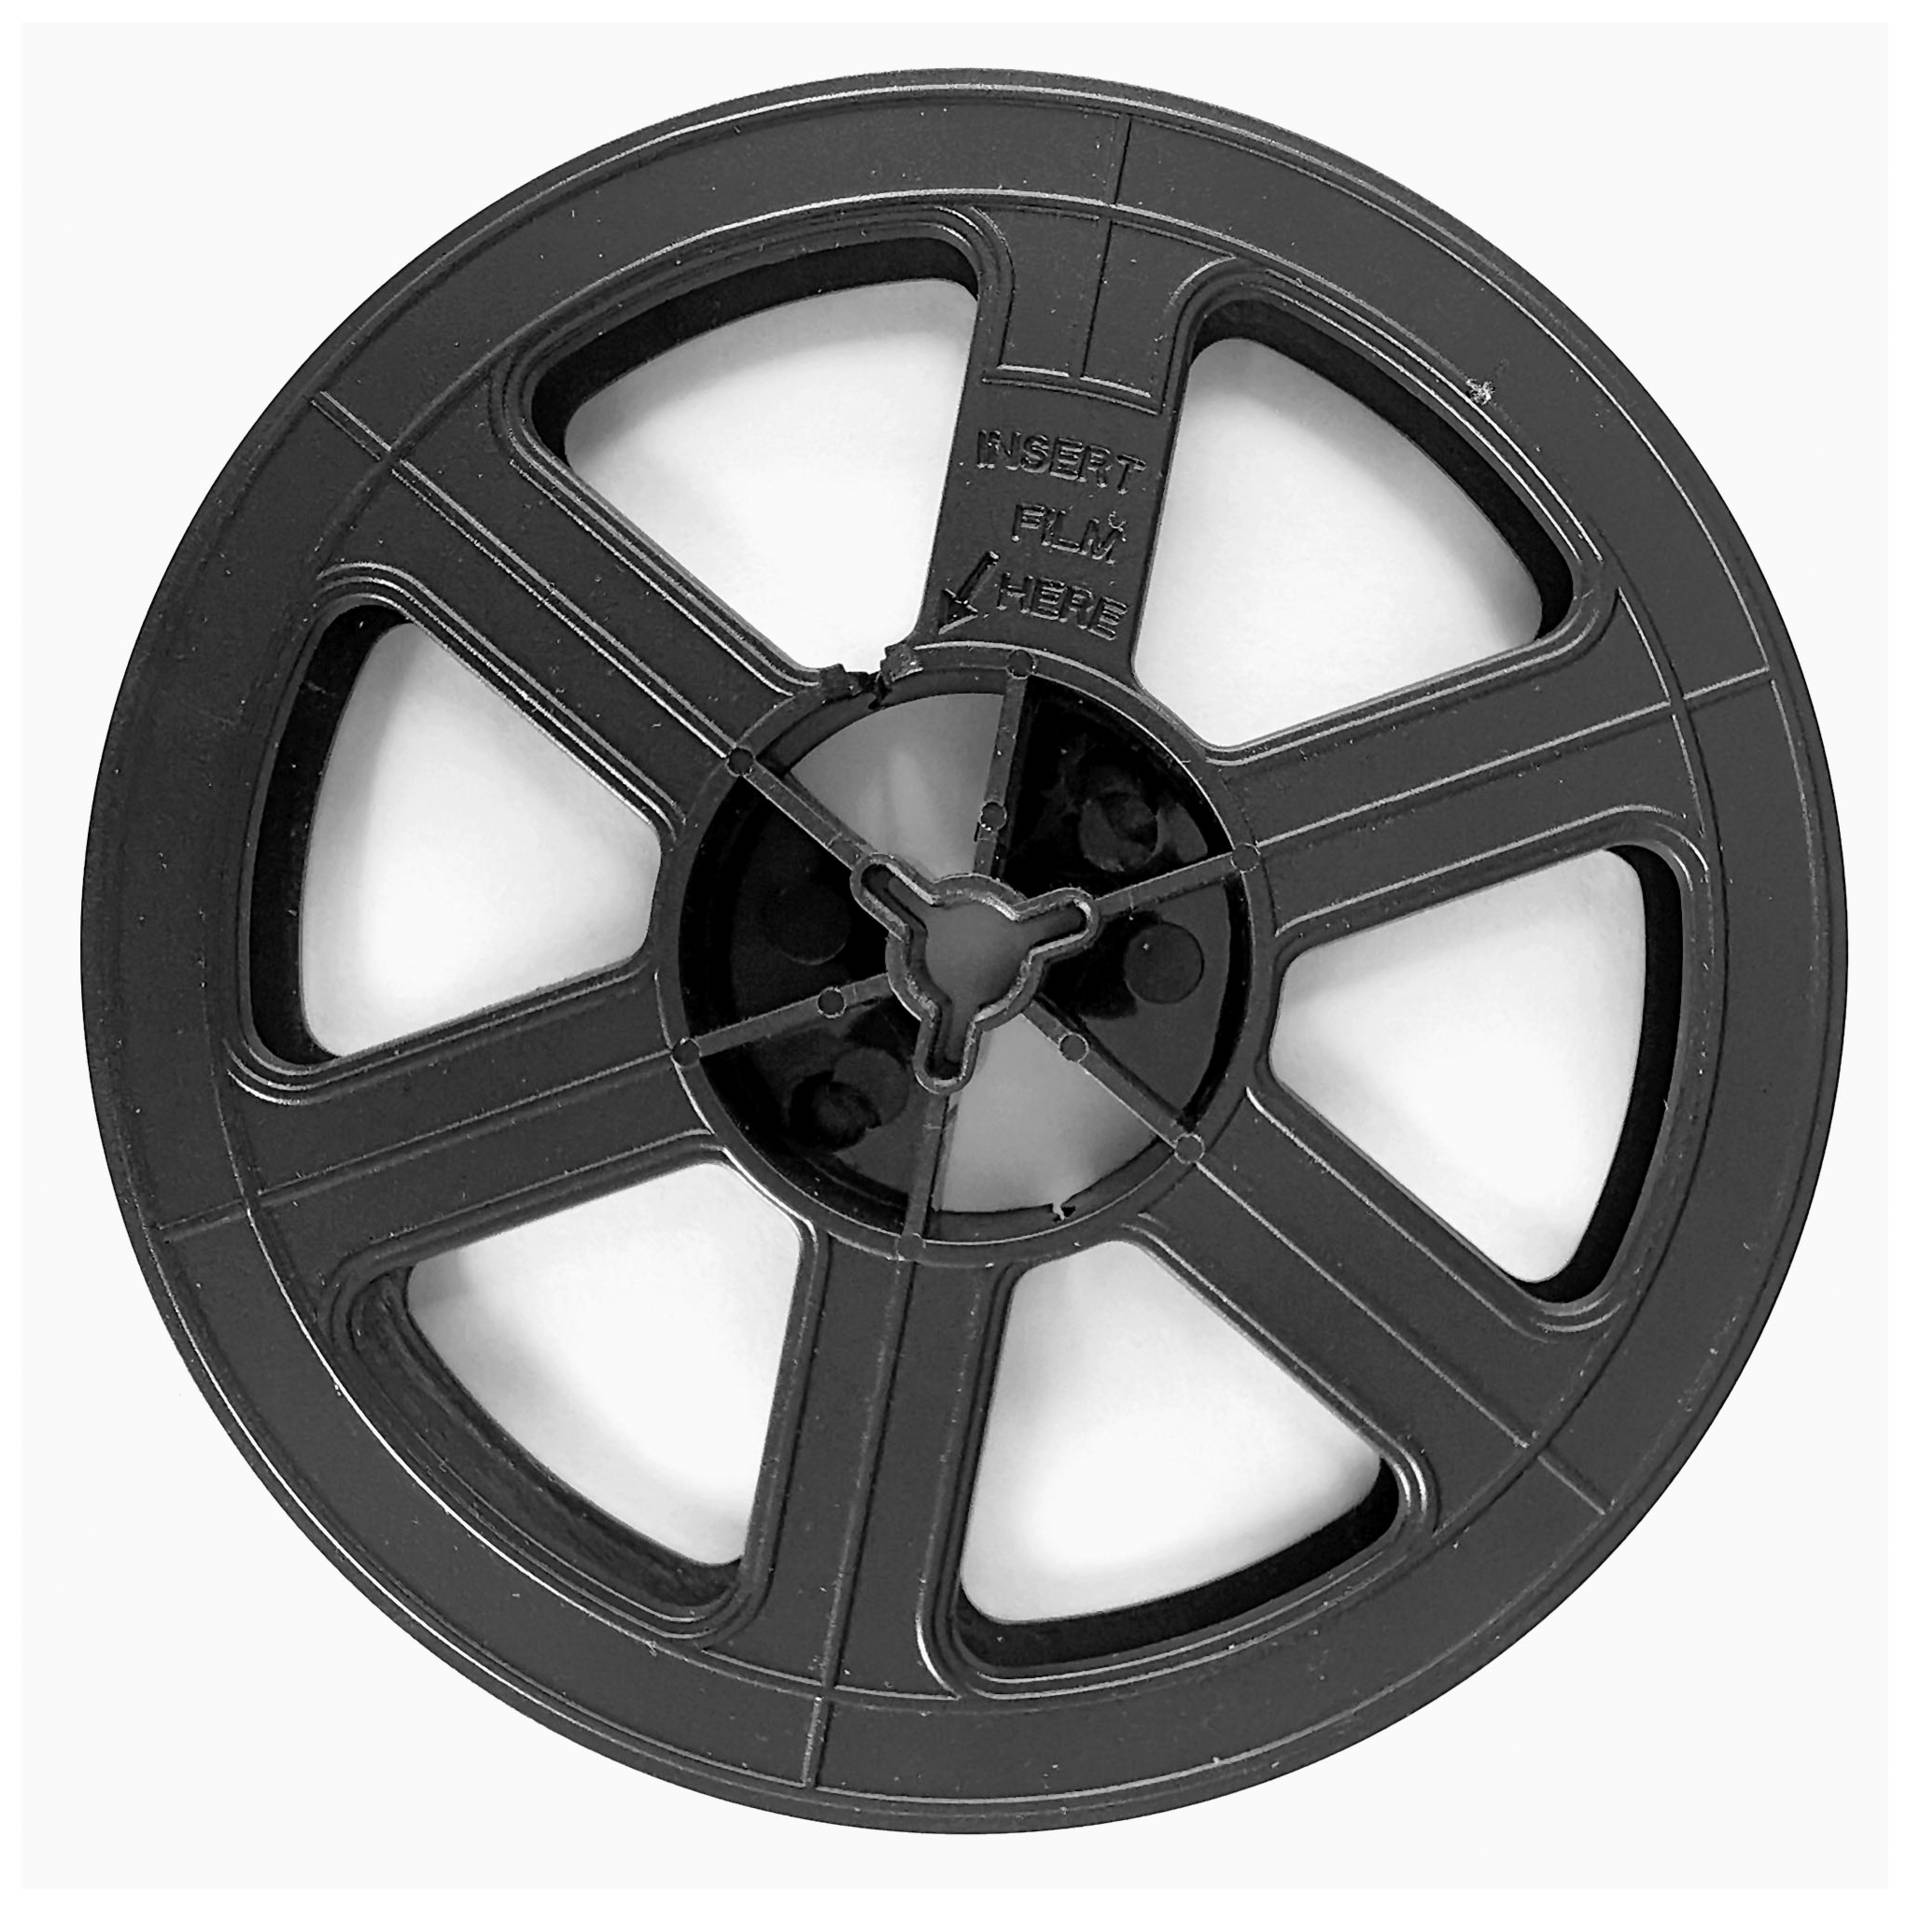 Reflecta Film Spool 127mm - 5inch